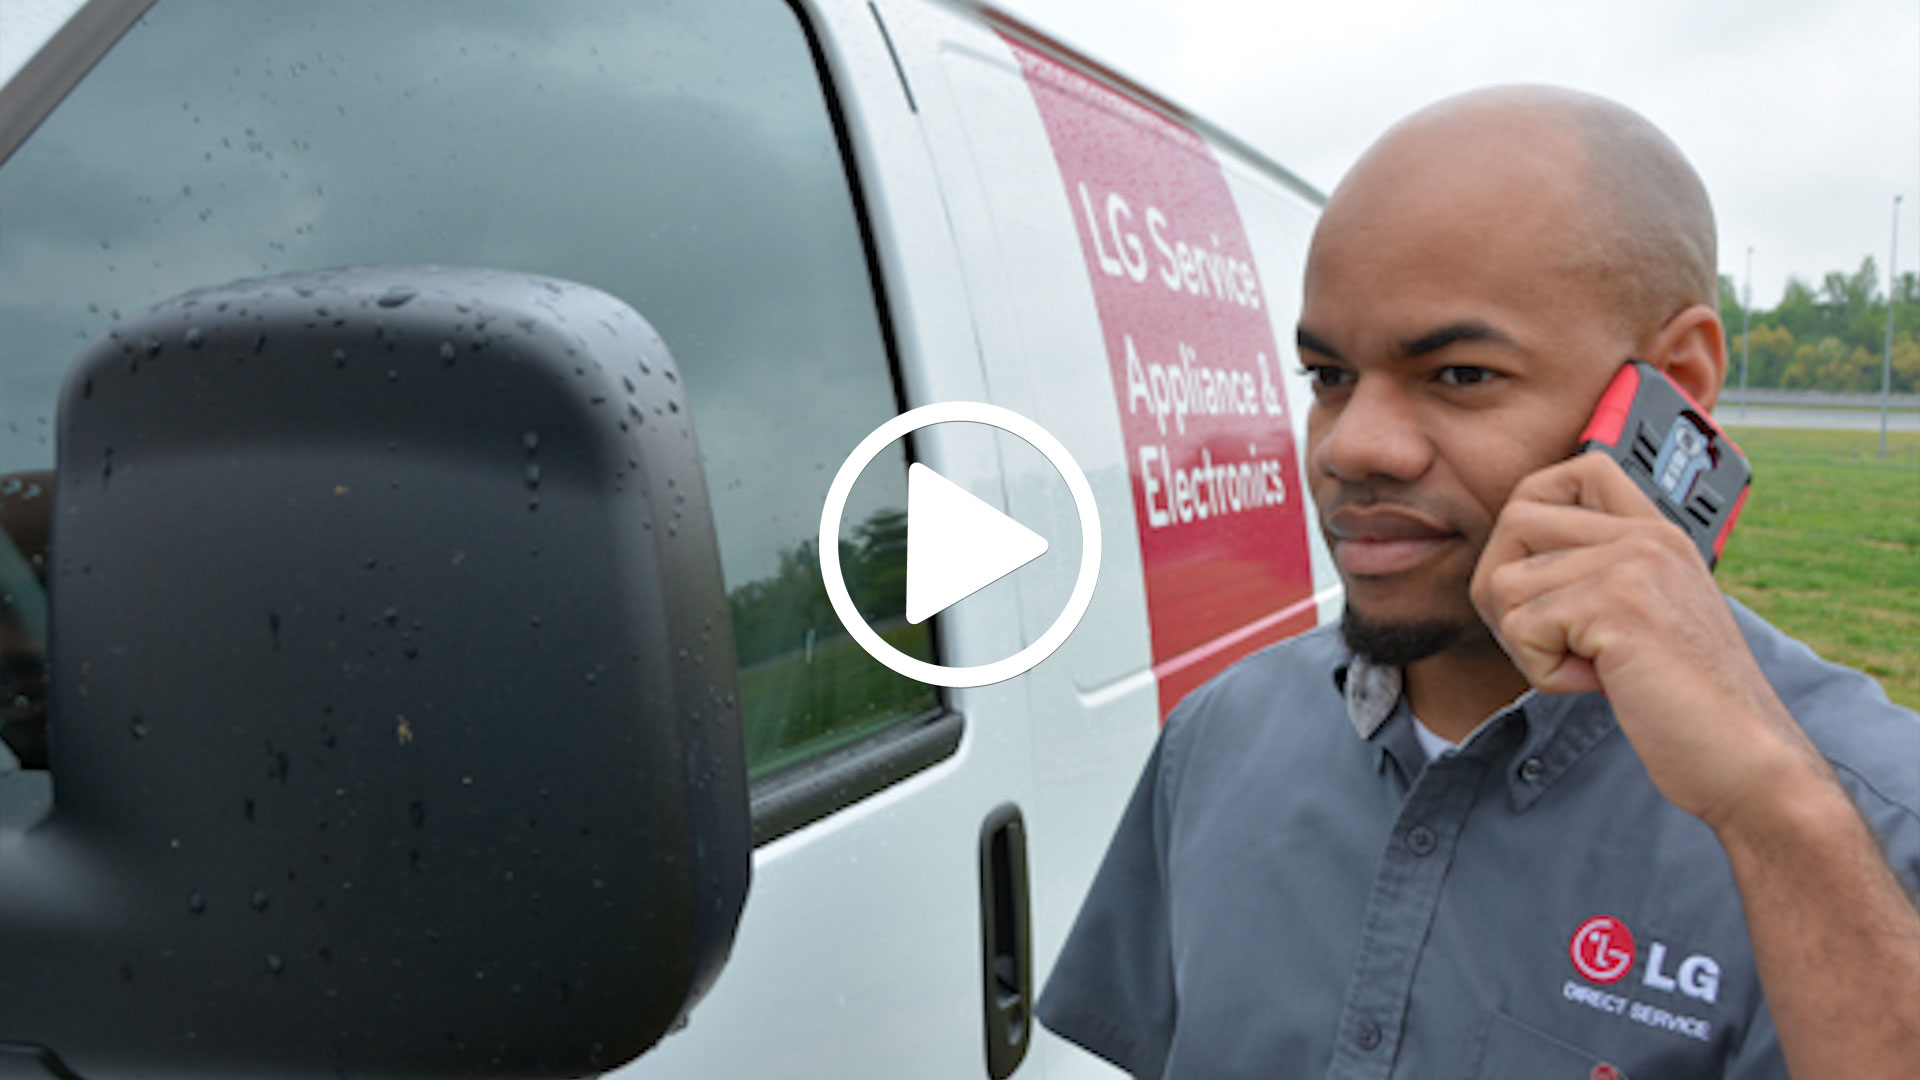 Watch our careers video for available job opening Field Service Technician in San Diego, CA